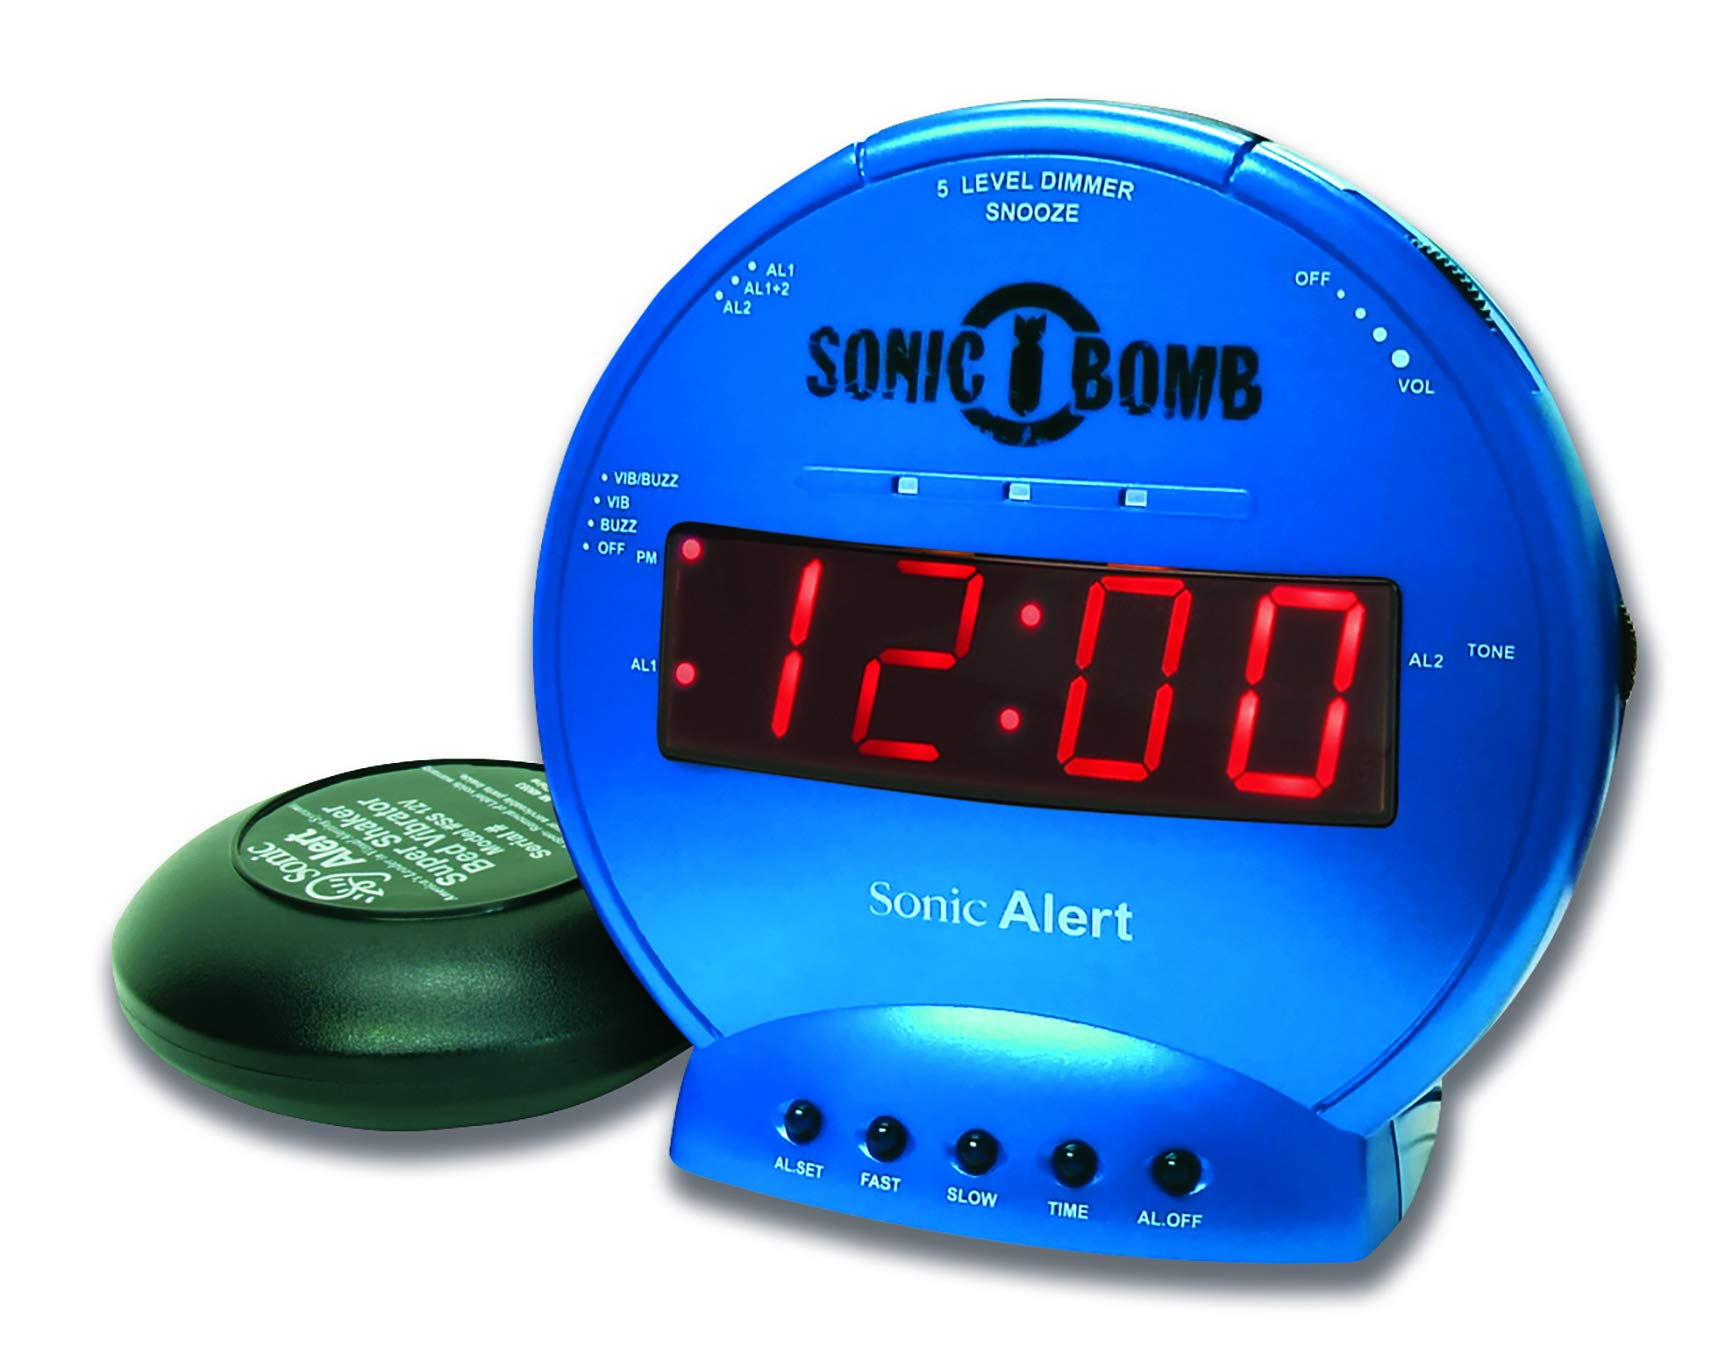 Sonic Bomb Loud Dual Alarm Clock with Vibrating Bed Shaker Turquoise - SBB500SST